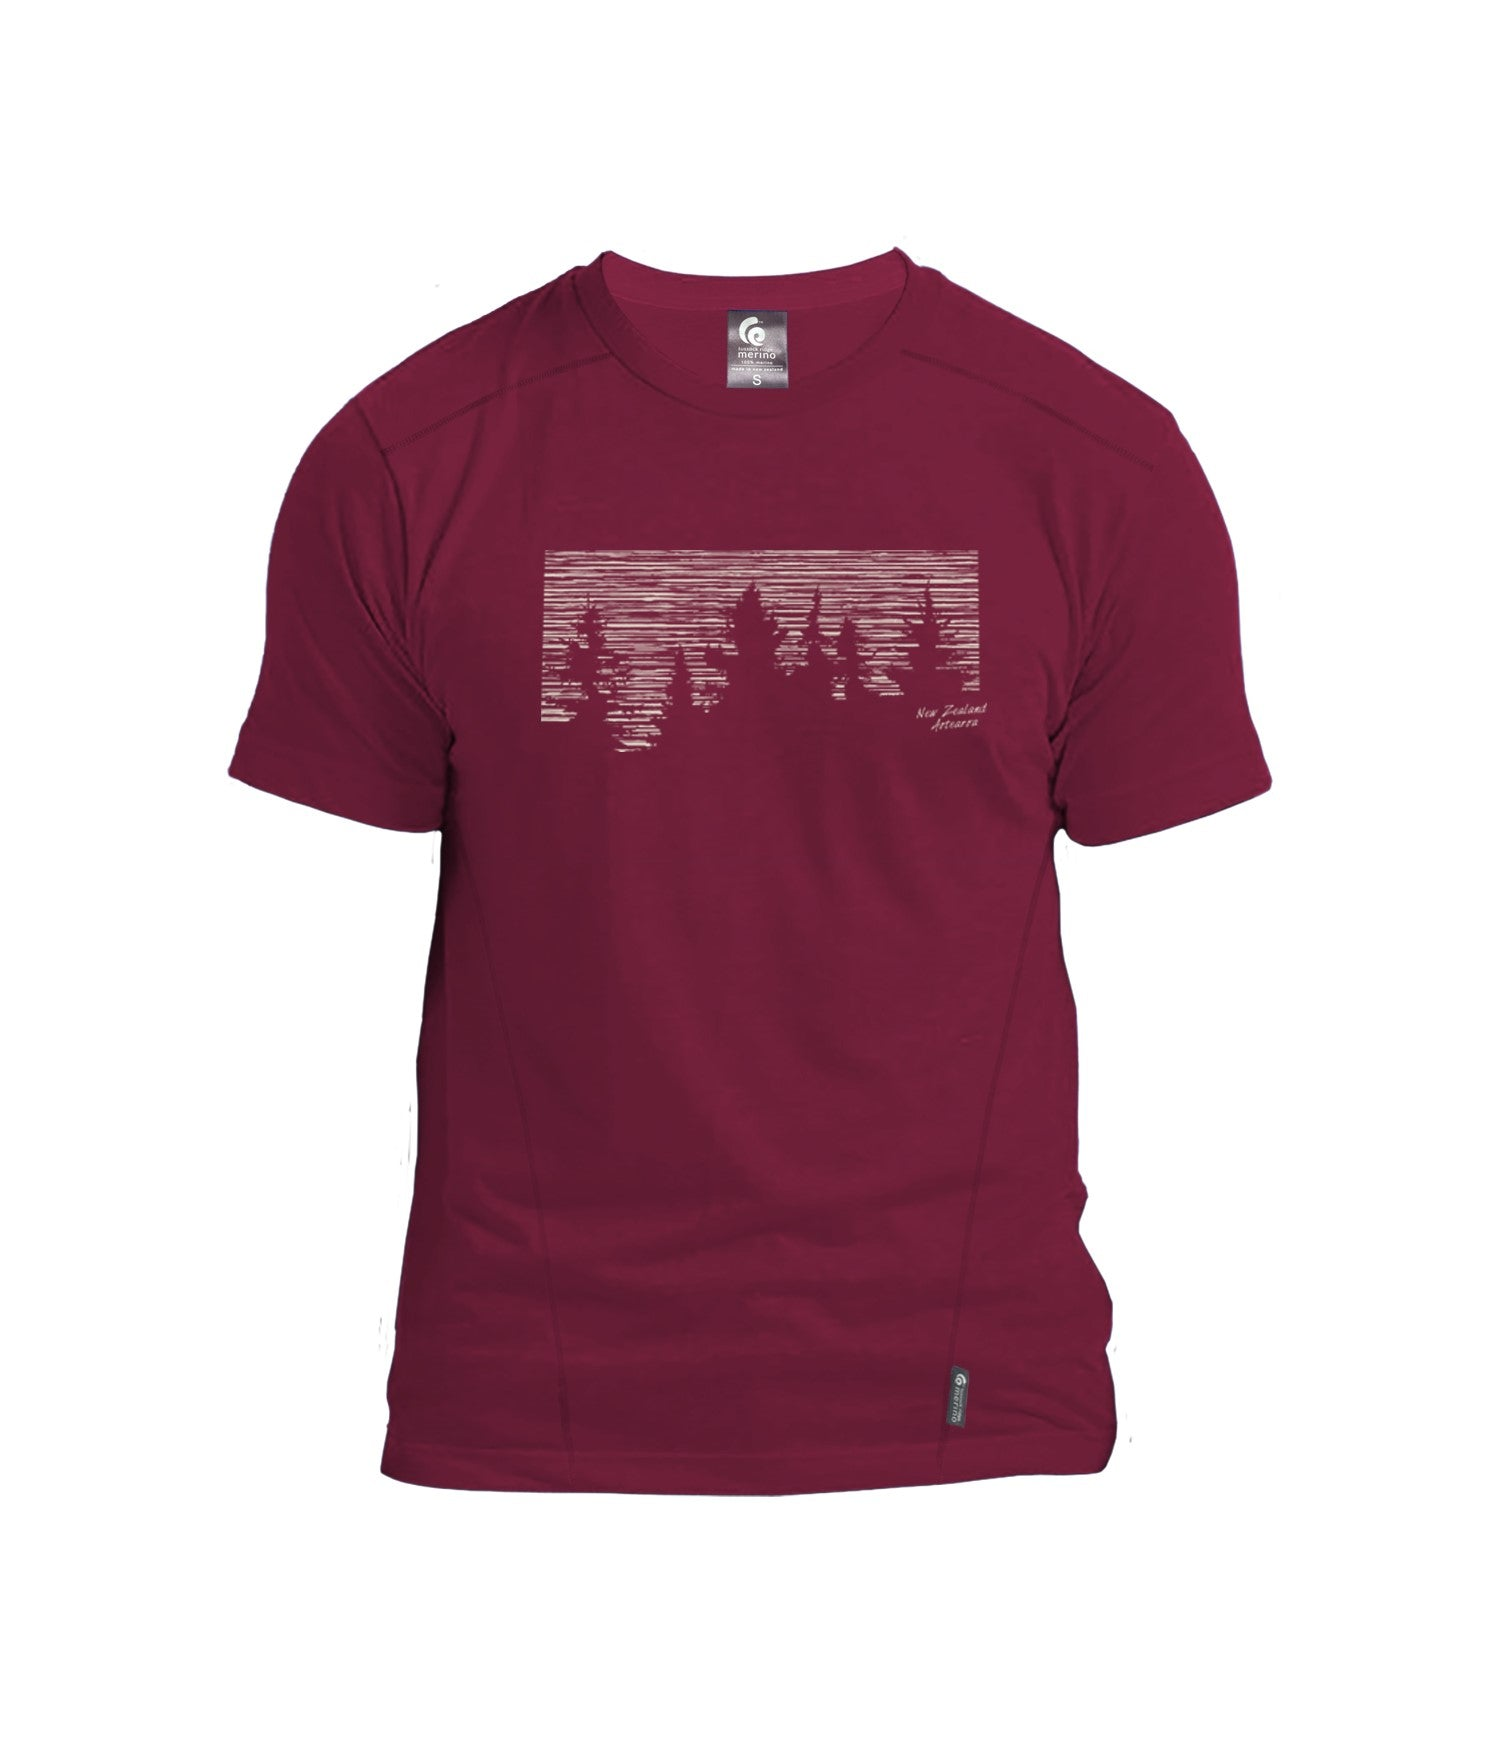 Merino Men's Forest Tee. Made in New Zealand